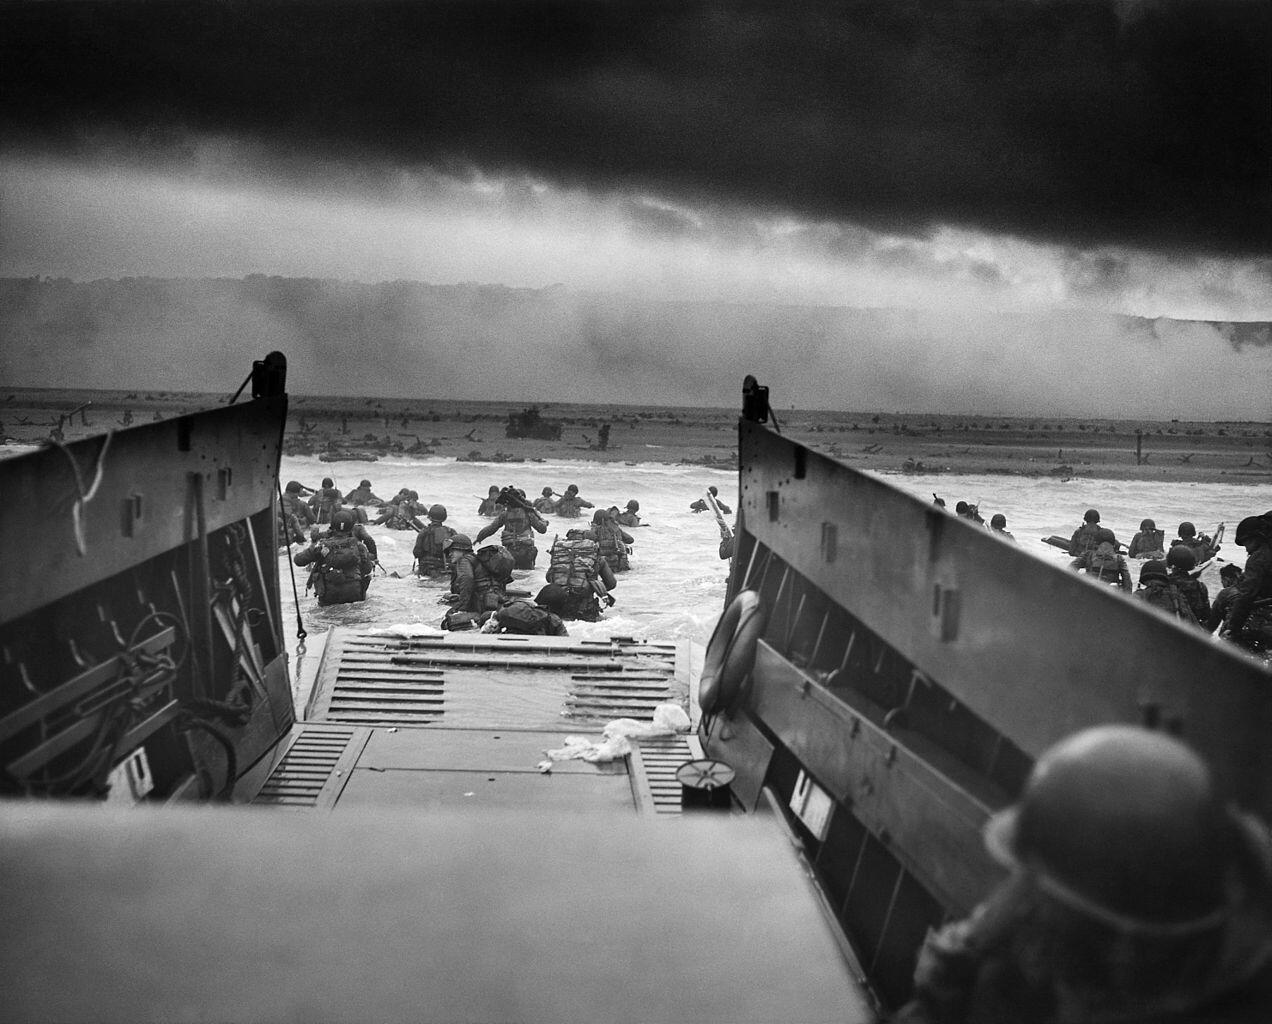 One of the most famous D-Day images: U.S. troops going ashore on Omaha Beach in the face of withering enemy fire. http://t.co/hwHzOdSACQ